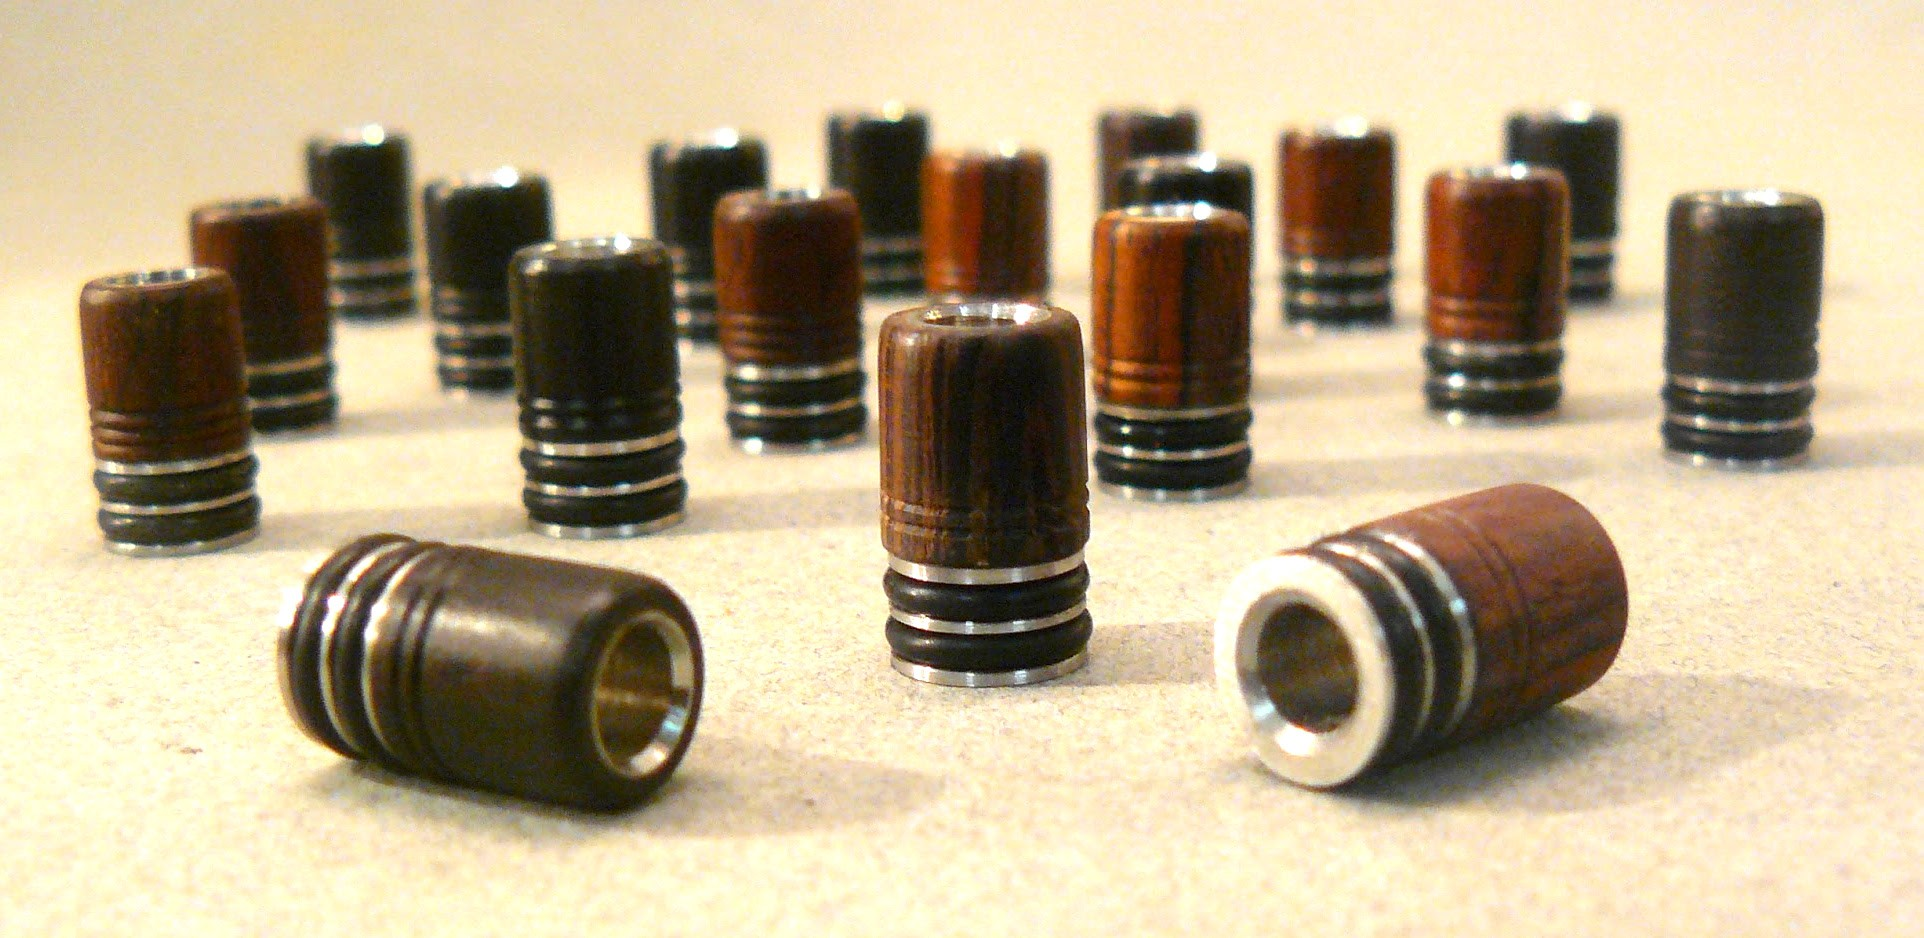 drip-tips shortys